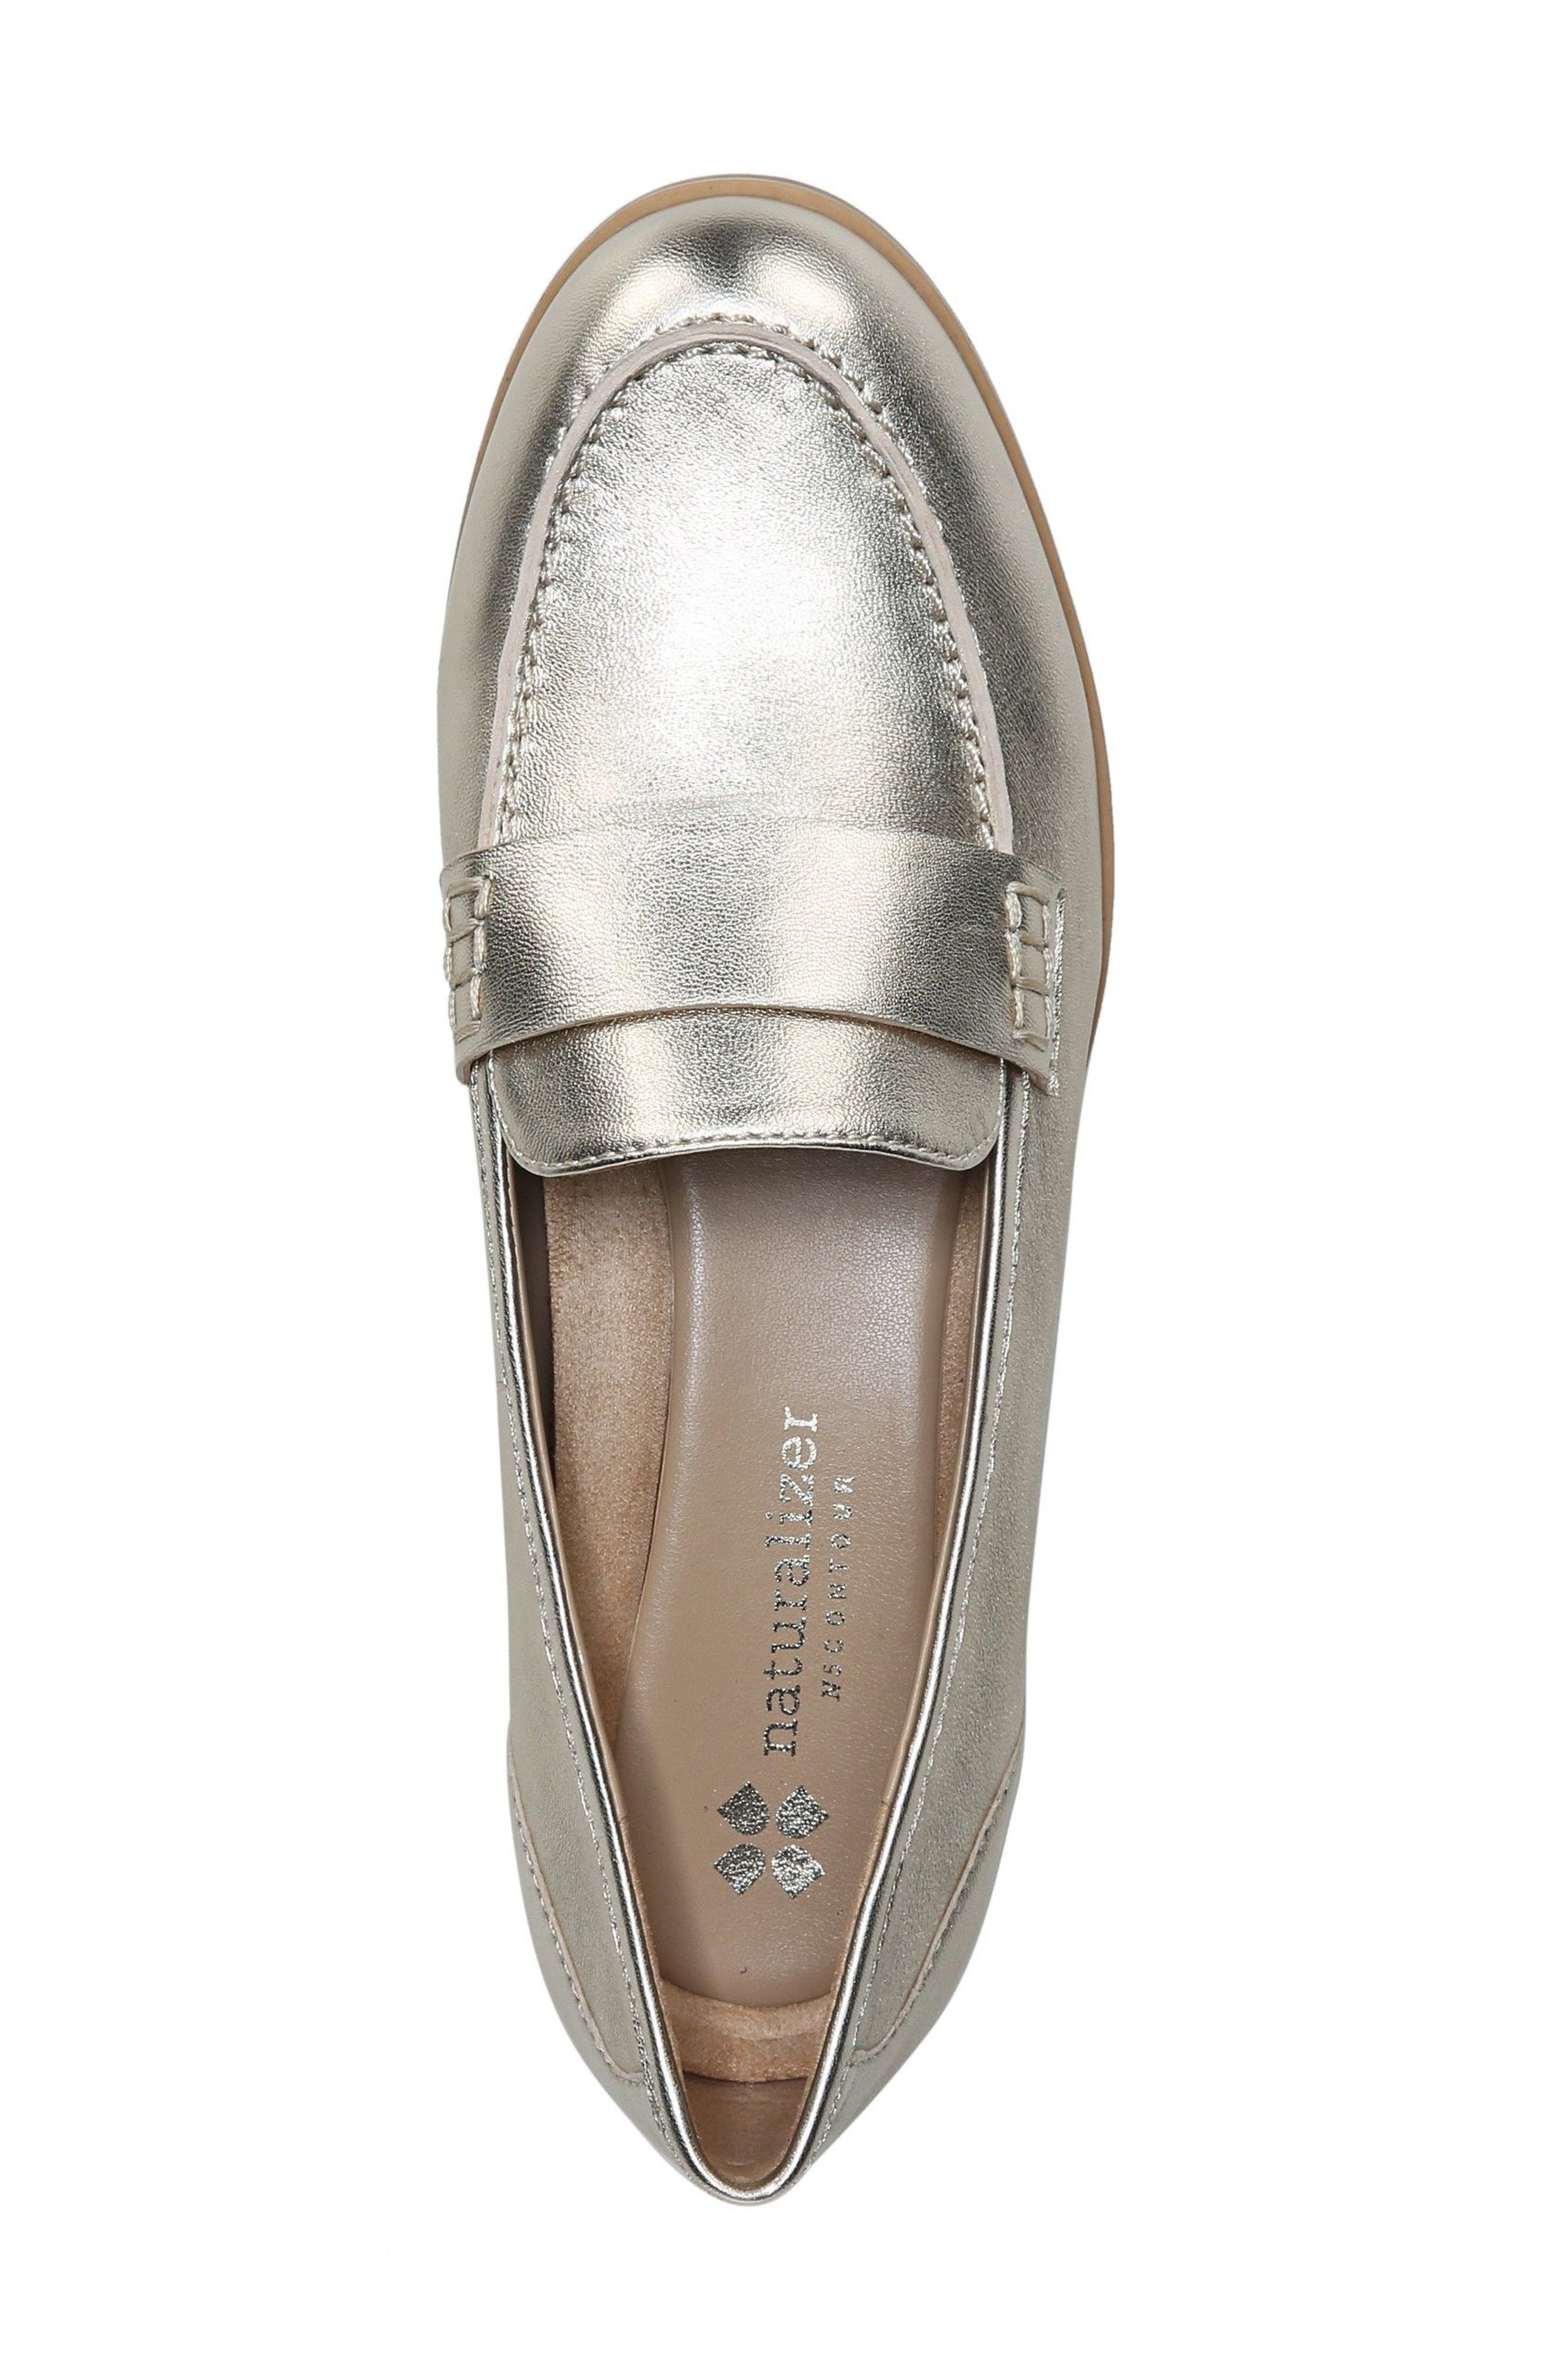 Veronica Loafer,                             Alternate thumbnail 3, color,                             Platina Leather